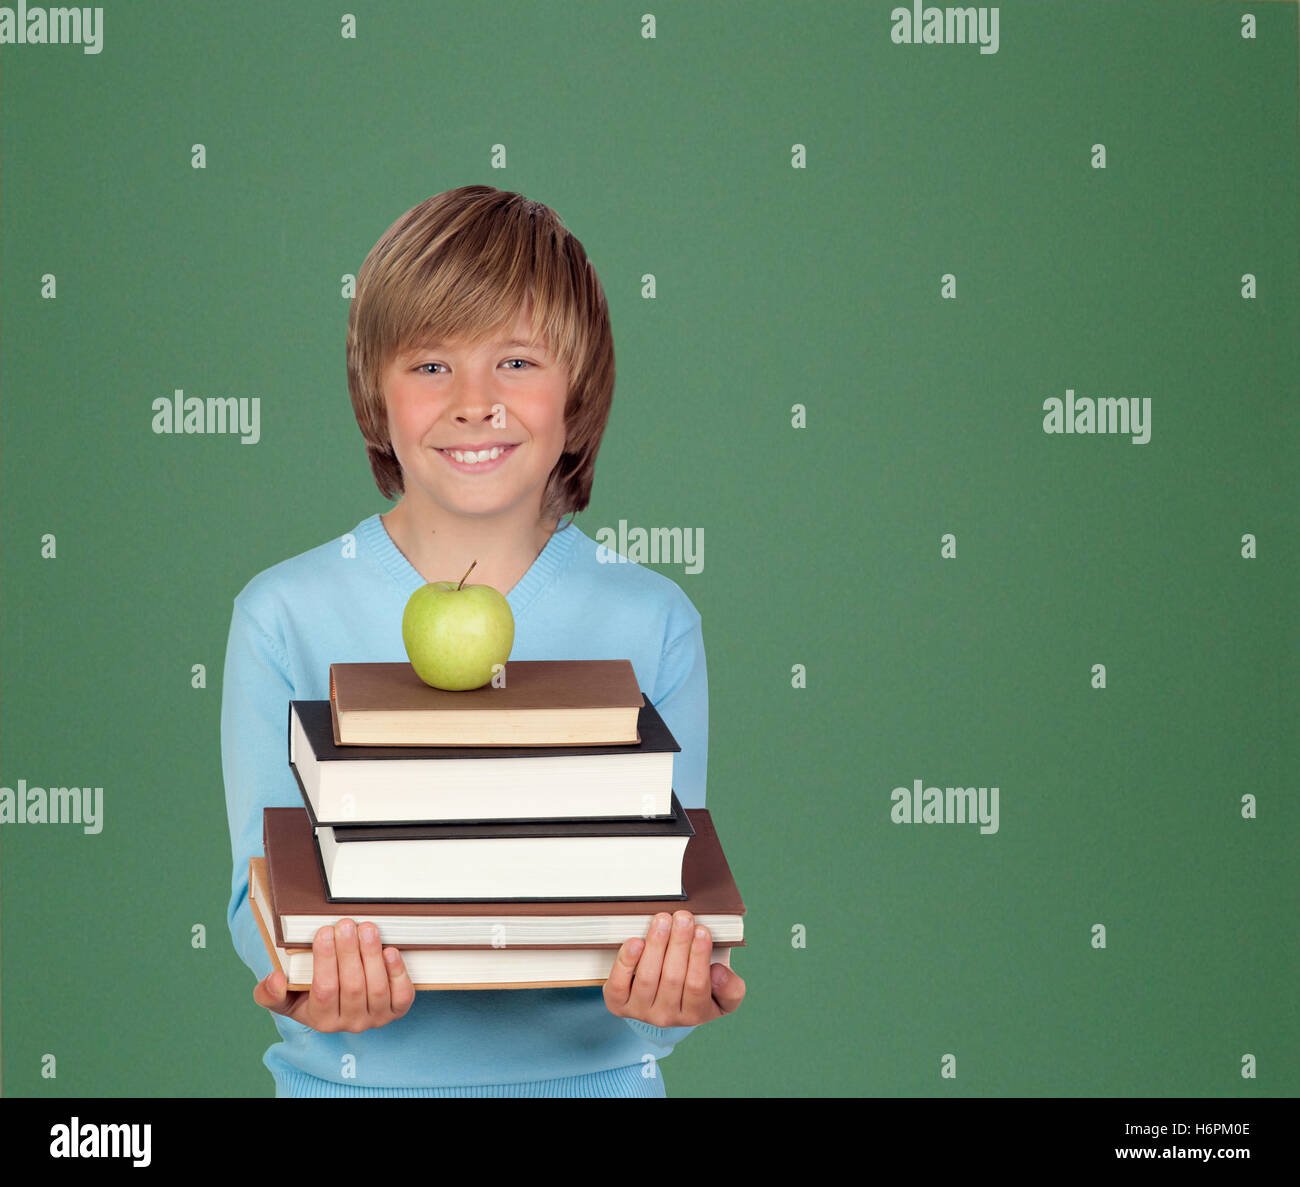 Preteen boy with a many books with a green blackboard for backgrond - Stock Image